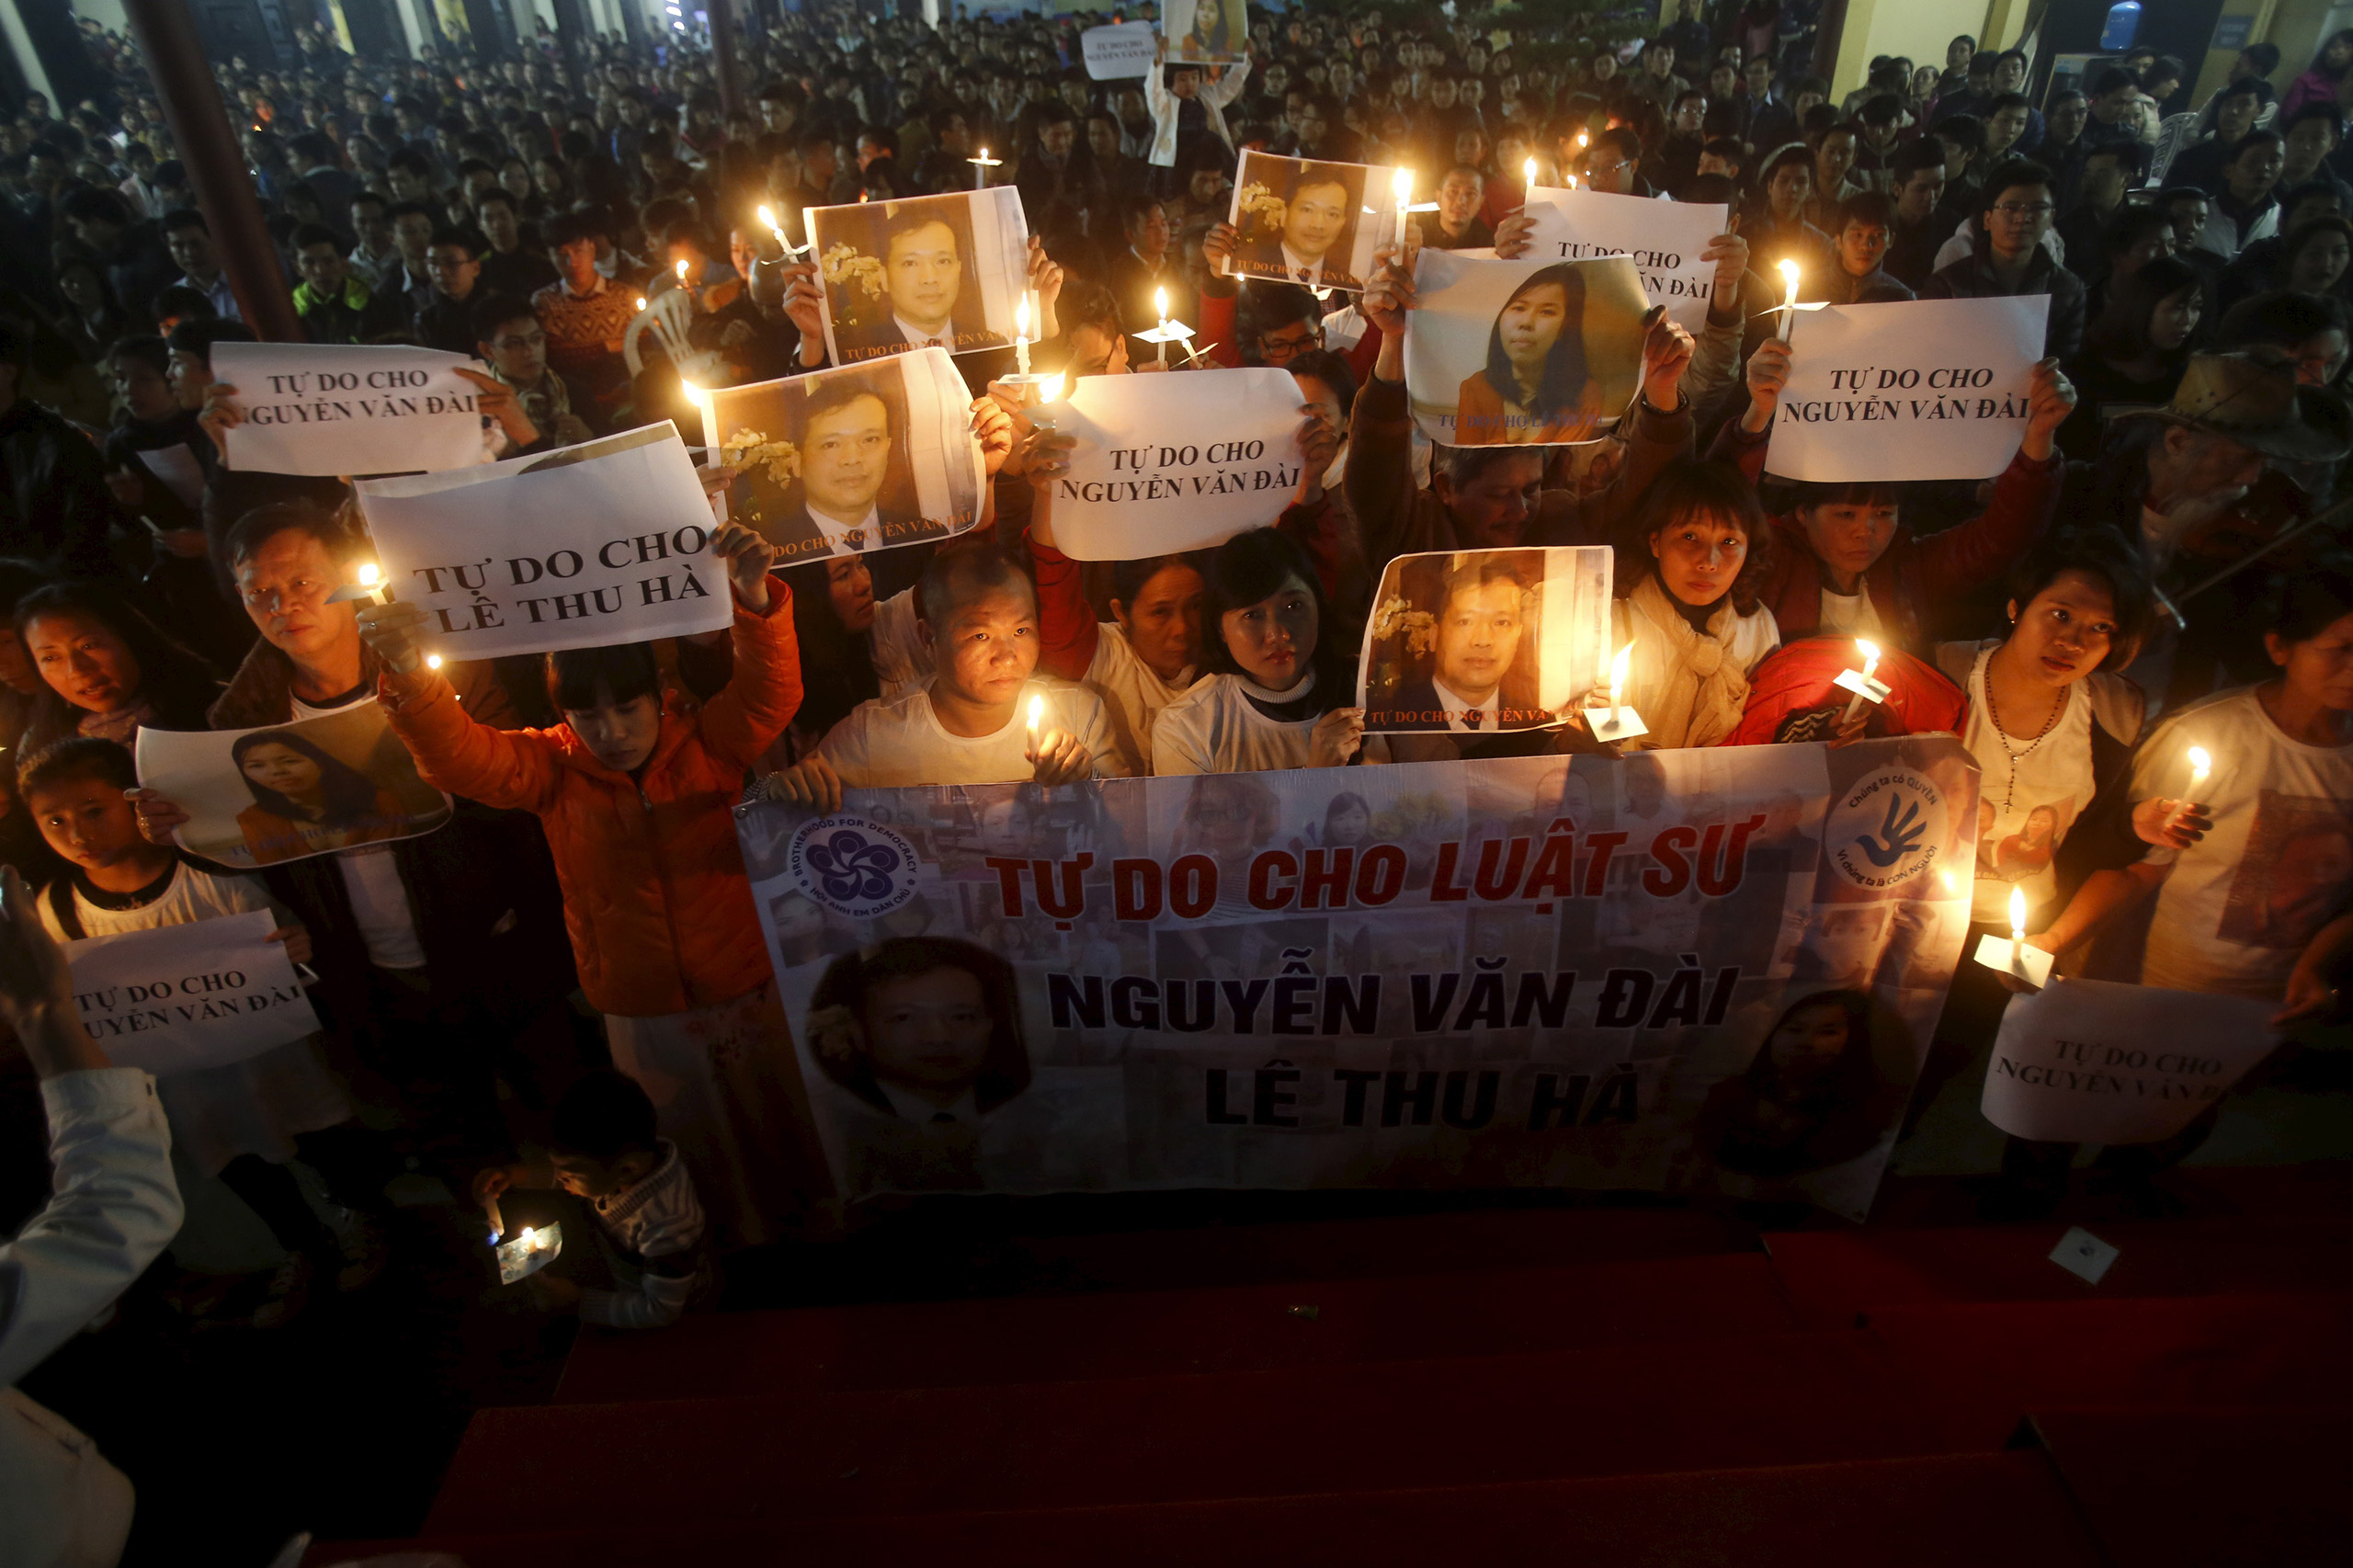 Vu Minh Khanh holds an image of her husband Nguyen Van Dai as Catholics hold candles and image of Dai's assistant Le Thu Ha during a mass prayer for Dai and Ha at Thai Ha church in Hanoi, Dec. 27, 2015.